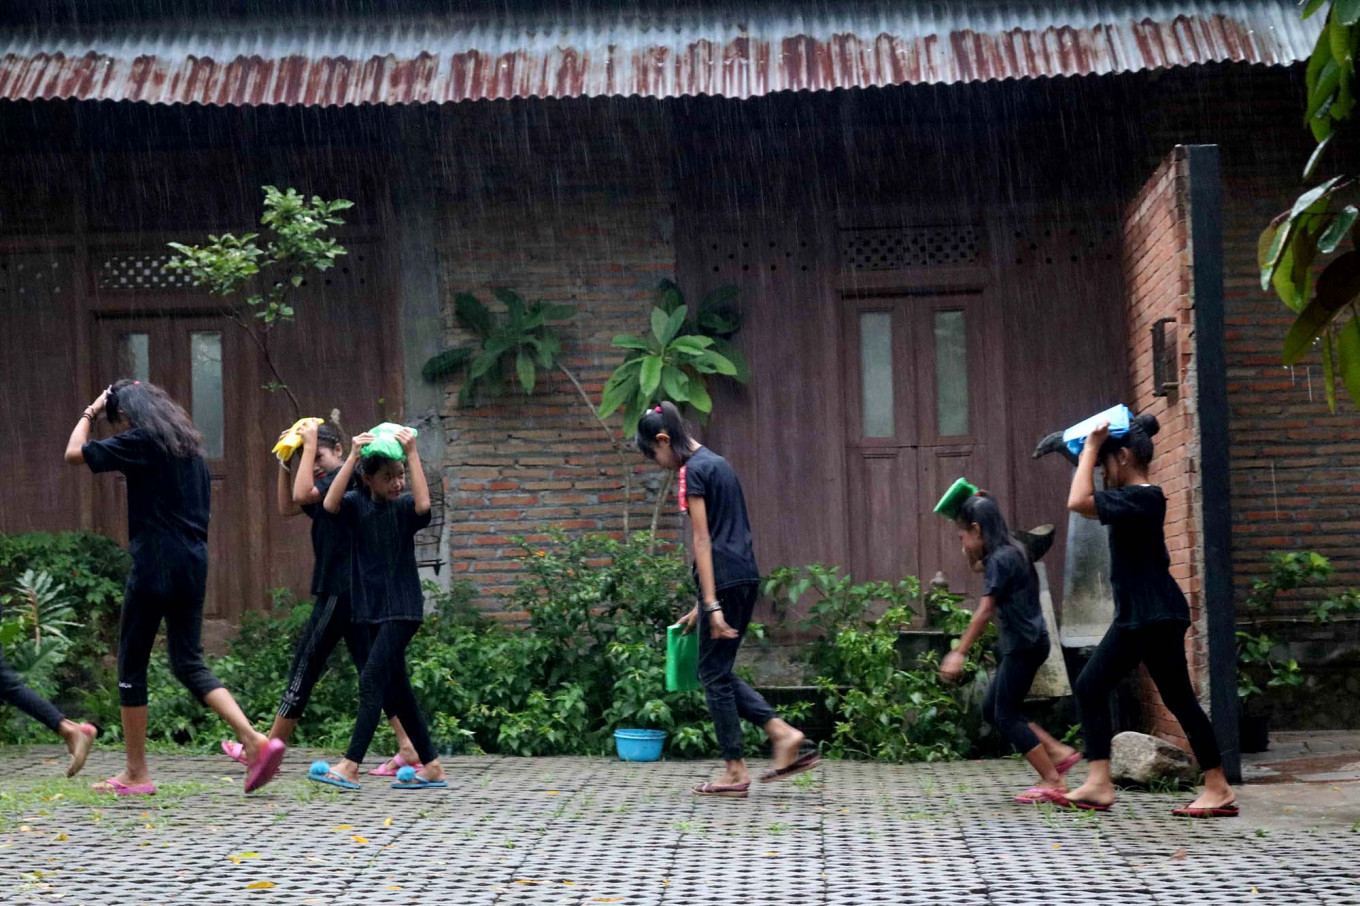 Children walk in the rain before joining the festival. JP/Maksum Nur Fauzan